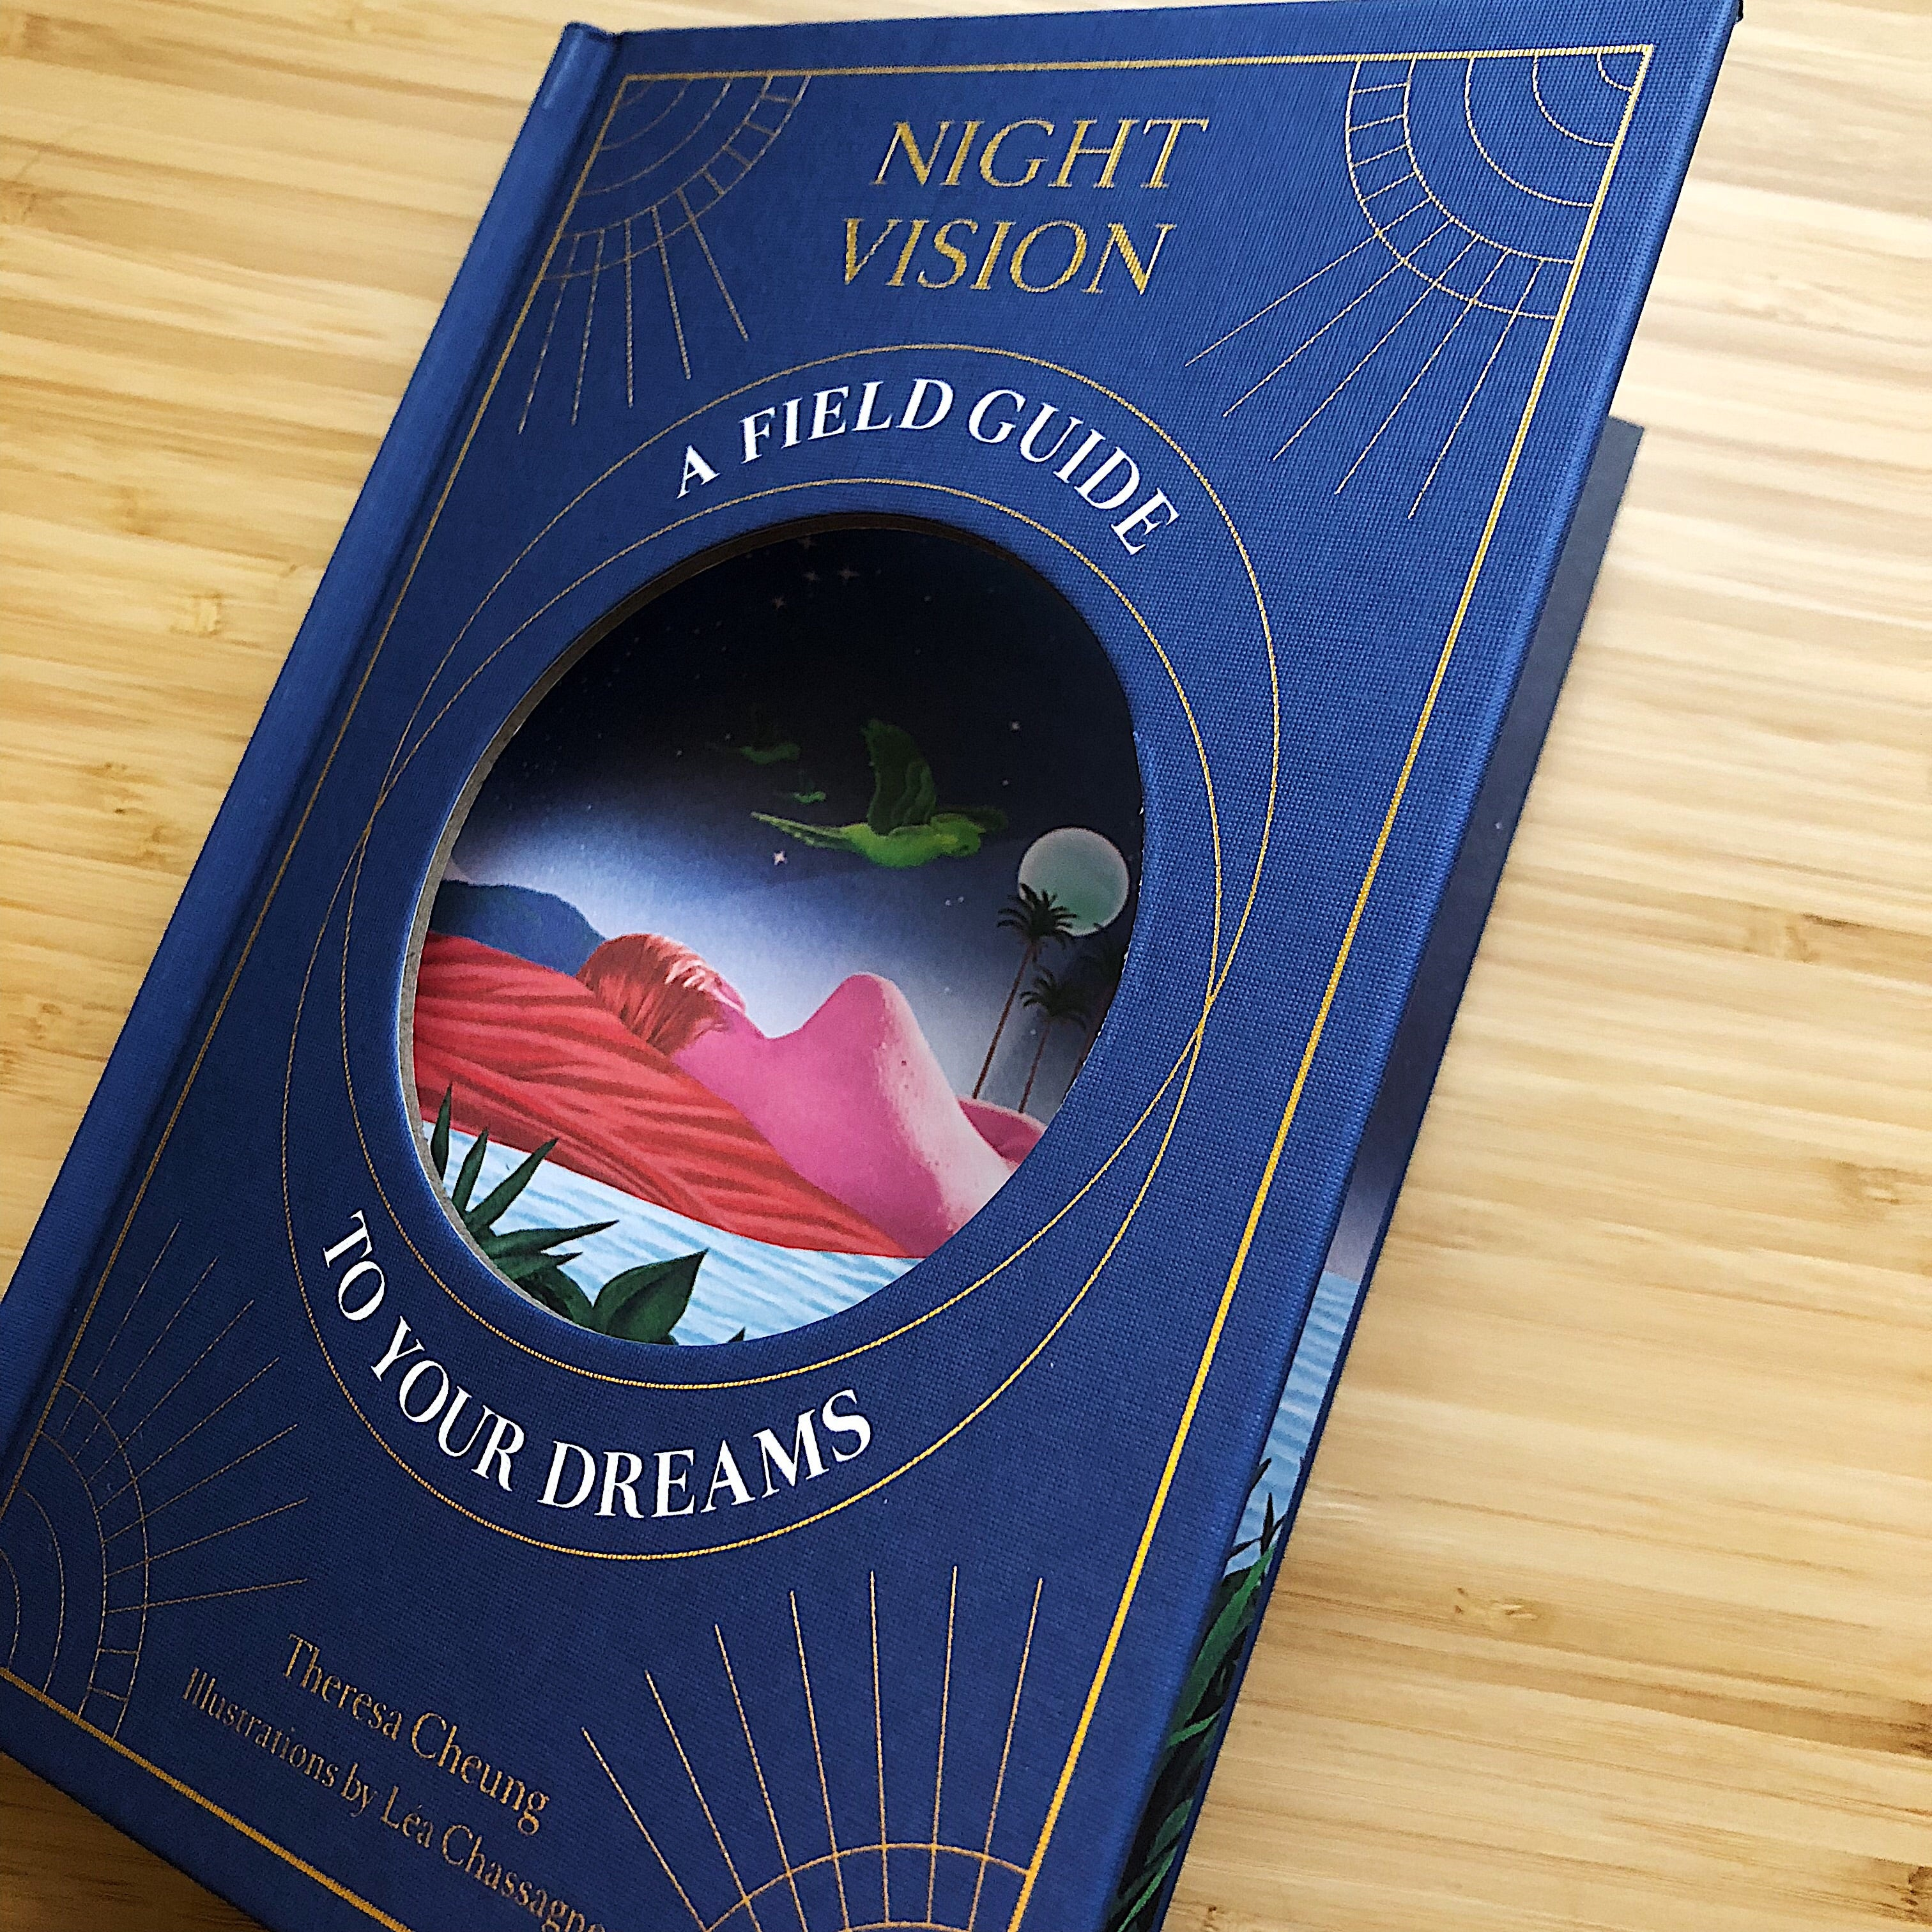 Night Vision: A Field Guide To Your Dreams // By Theresa Cheung